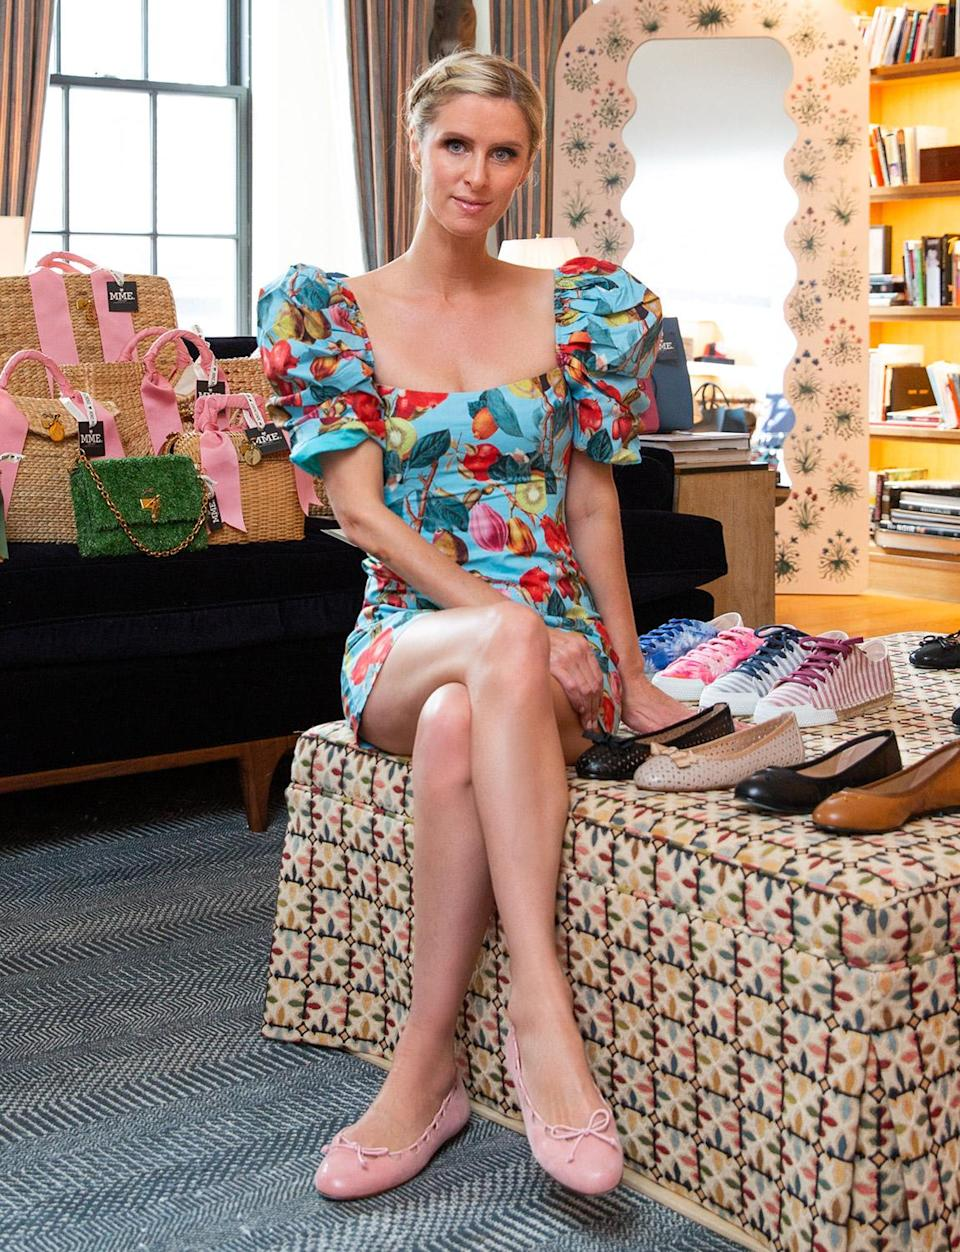 <p>Nicky Hilton's French Sole line joins forces with Cara Cara to raise funds for Lifeway Network to combat human trafficking in June at her home in N.Y.C.</p>